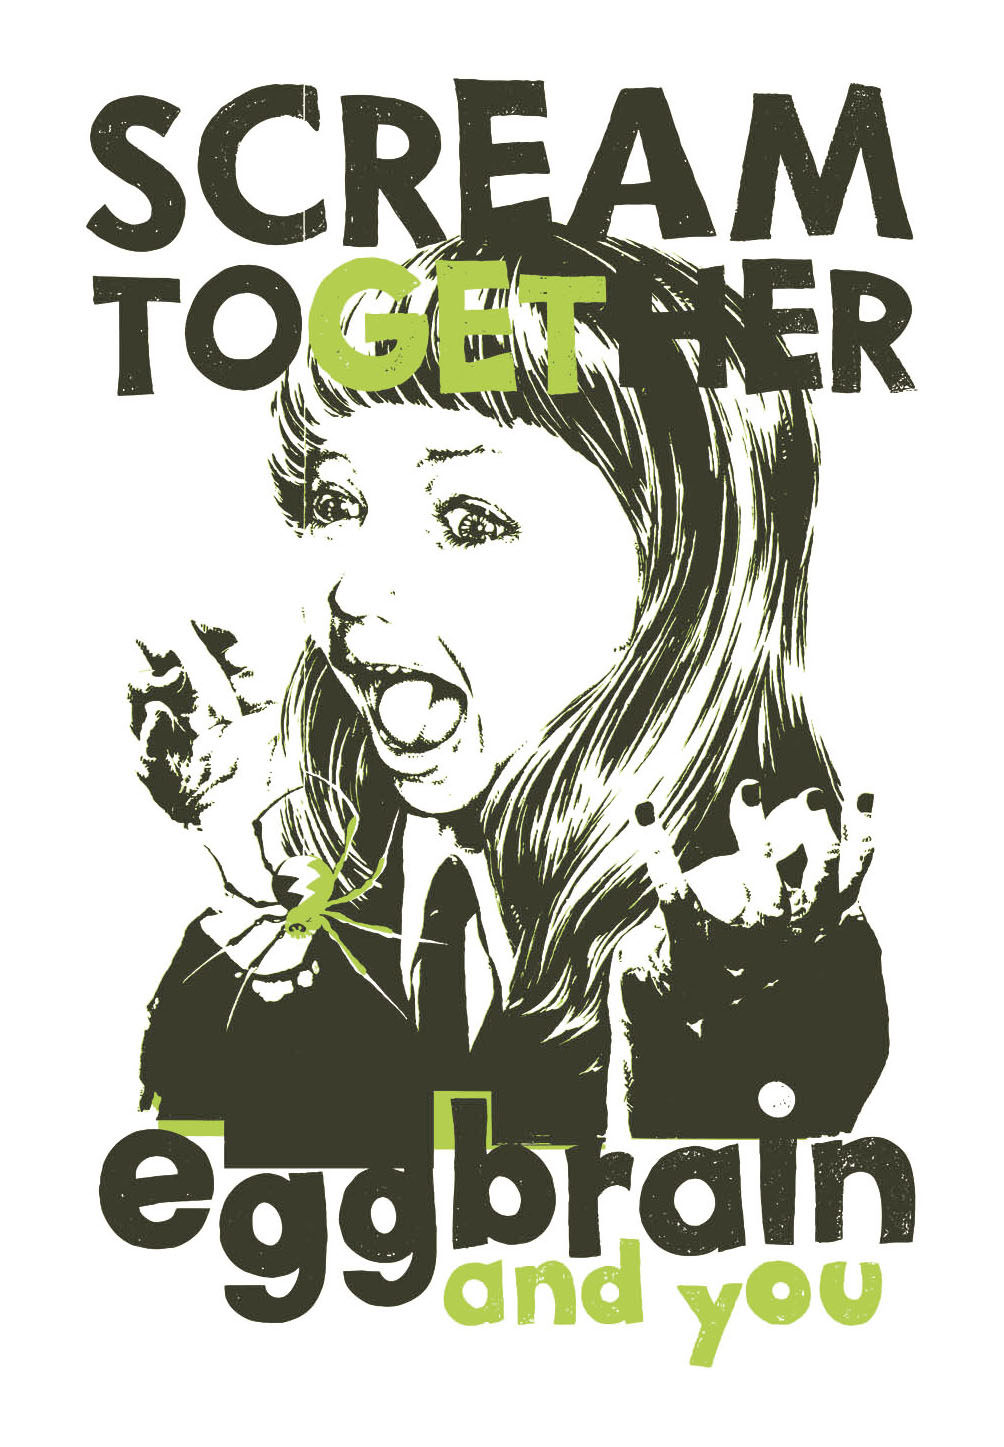 EGG BRAIN / SCREAM GIRL